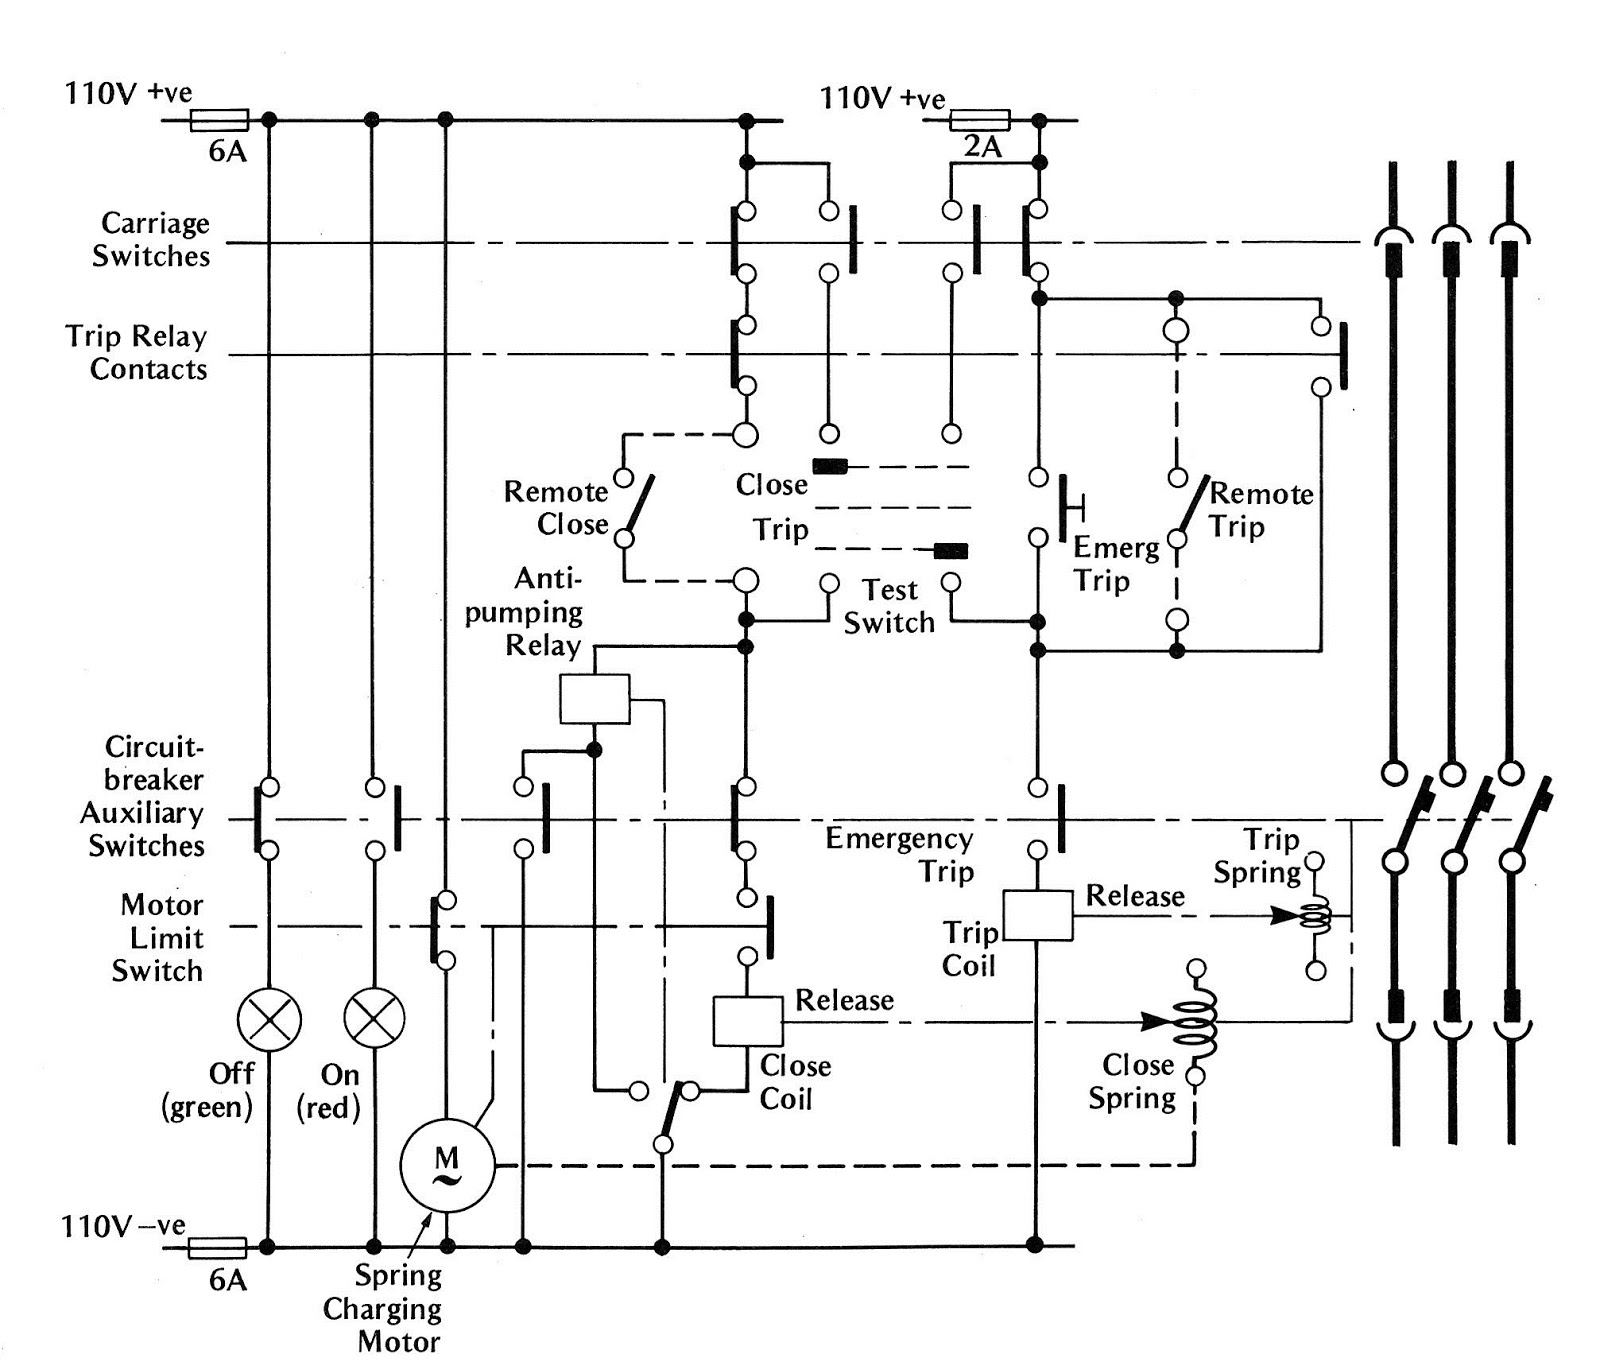 gfci schematic and switch wiring diagram images gallery engineering photos videos and articels engineering search [ 1600 x 1362 Pixel ]